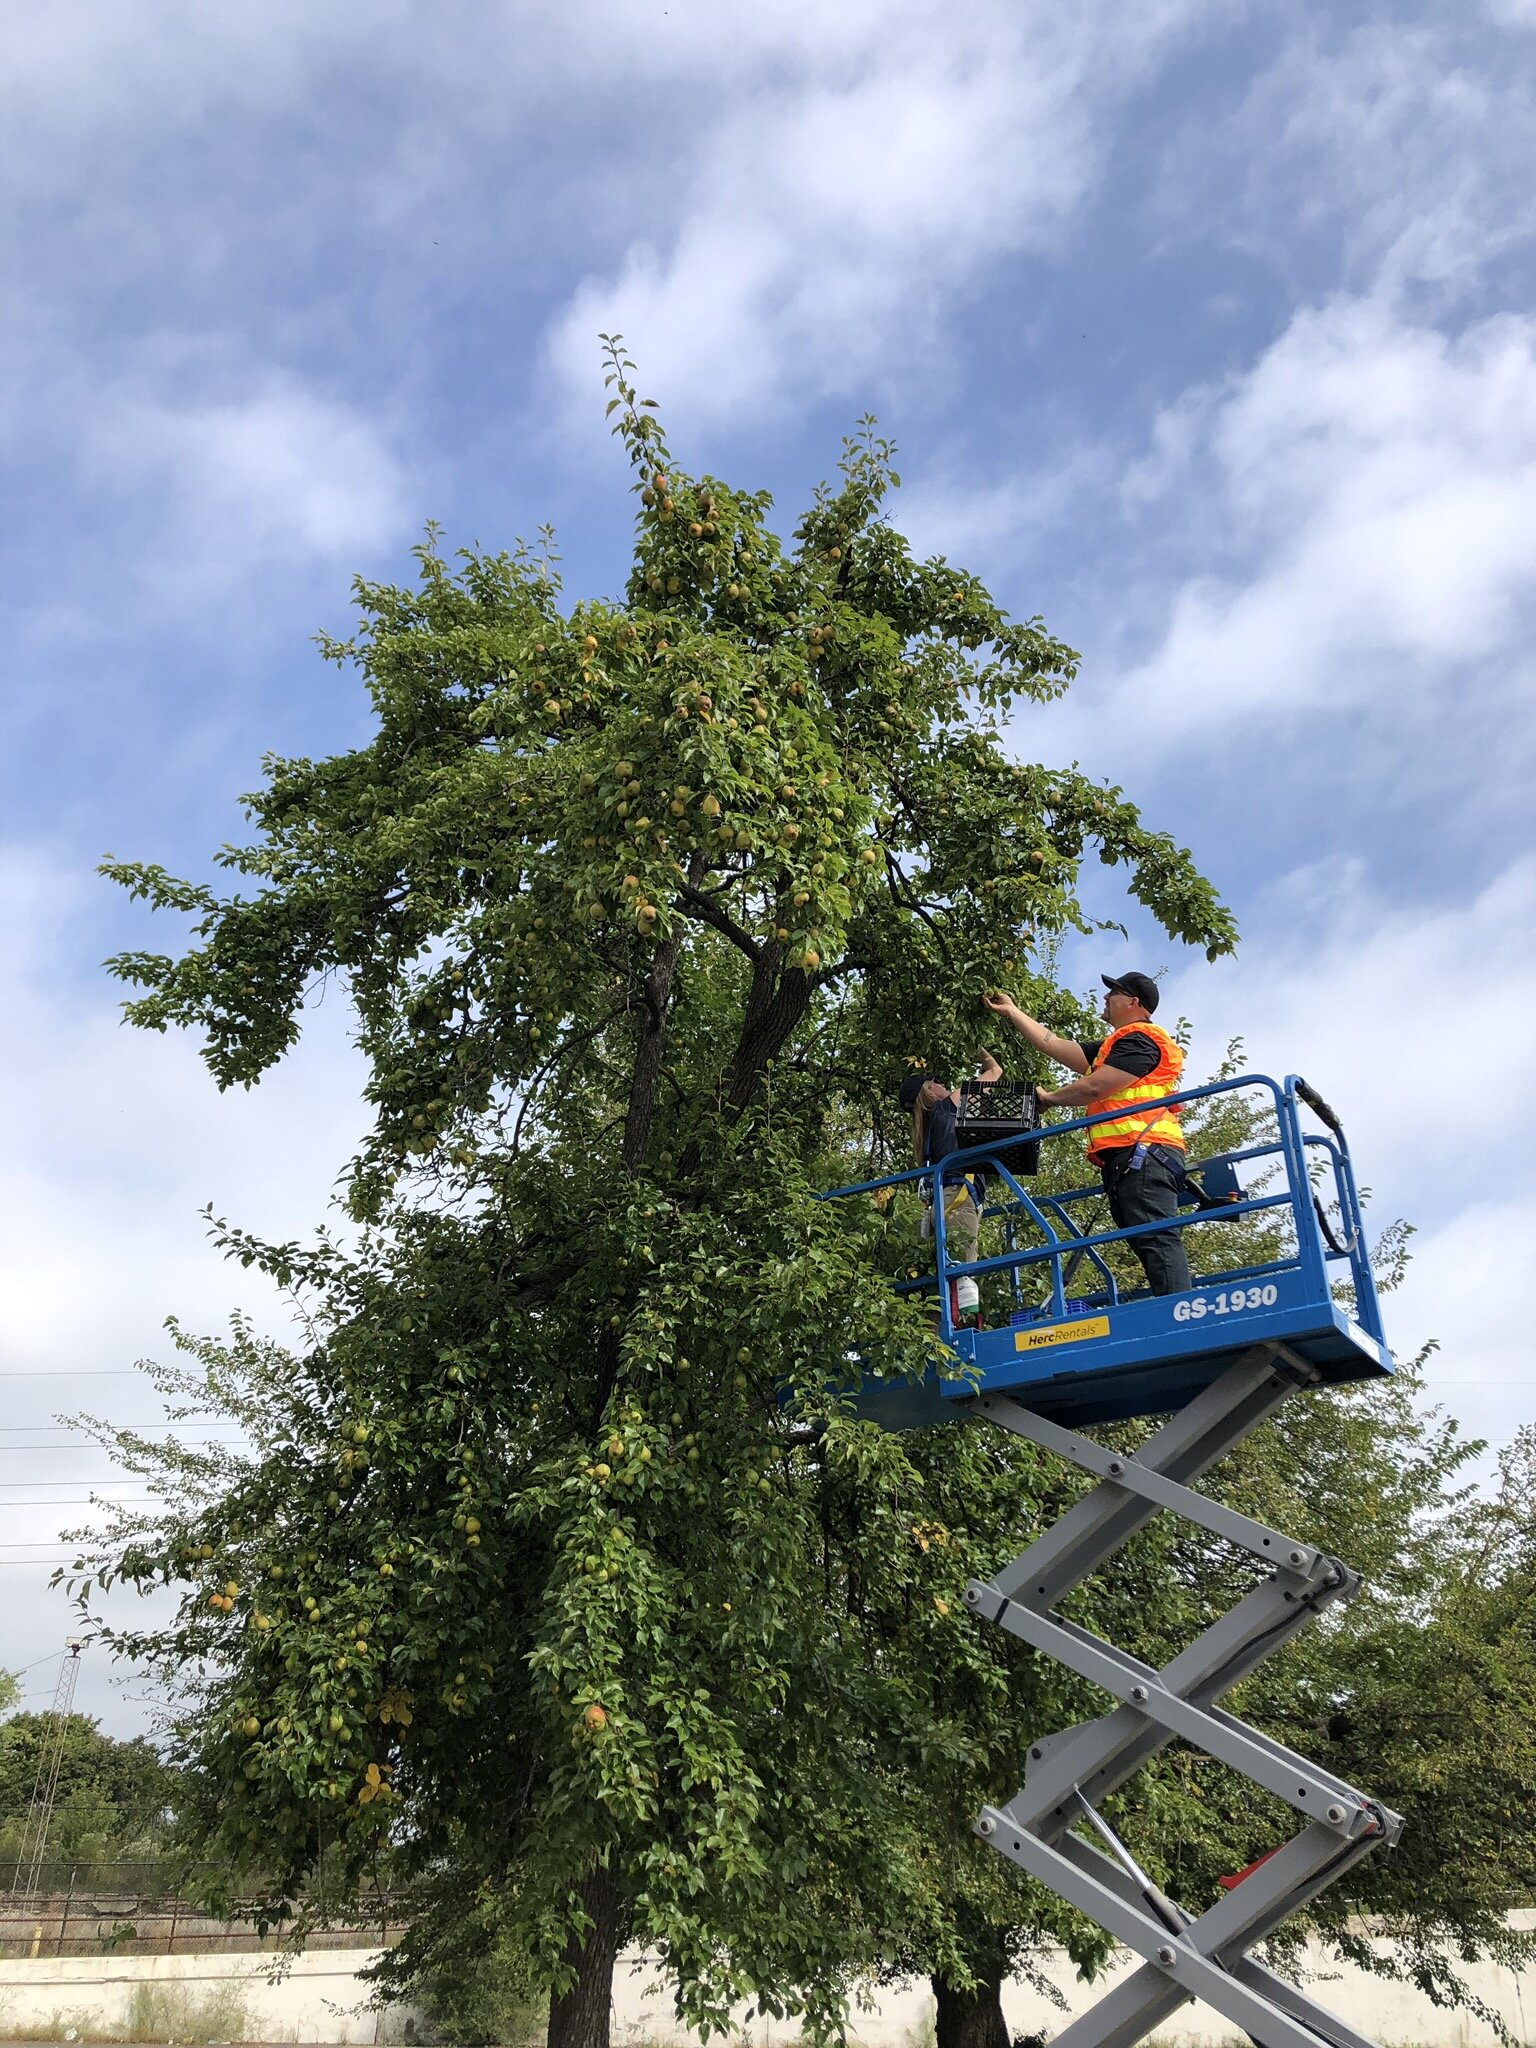 Herc Rentals donated equipment to help volunteers harvest the pear tree at Electric Works.